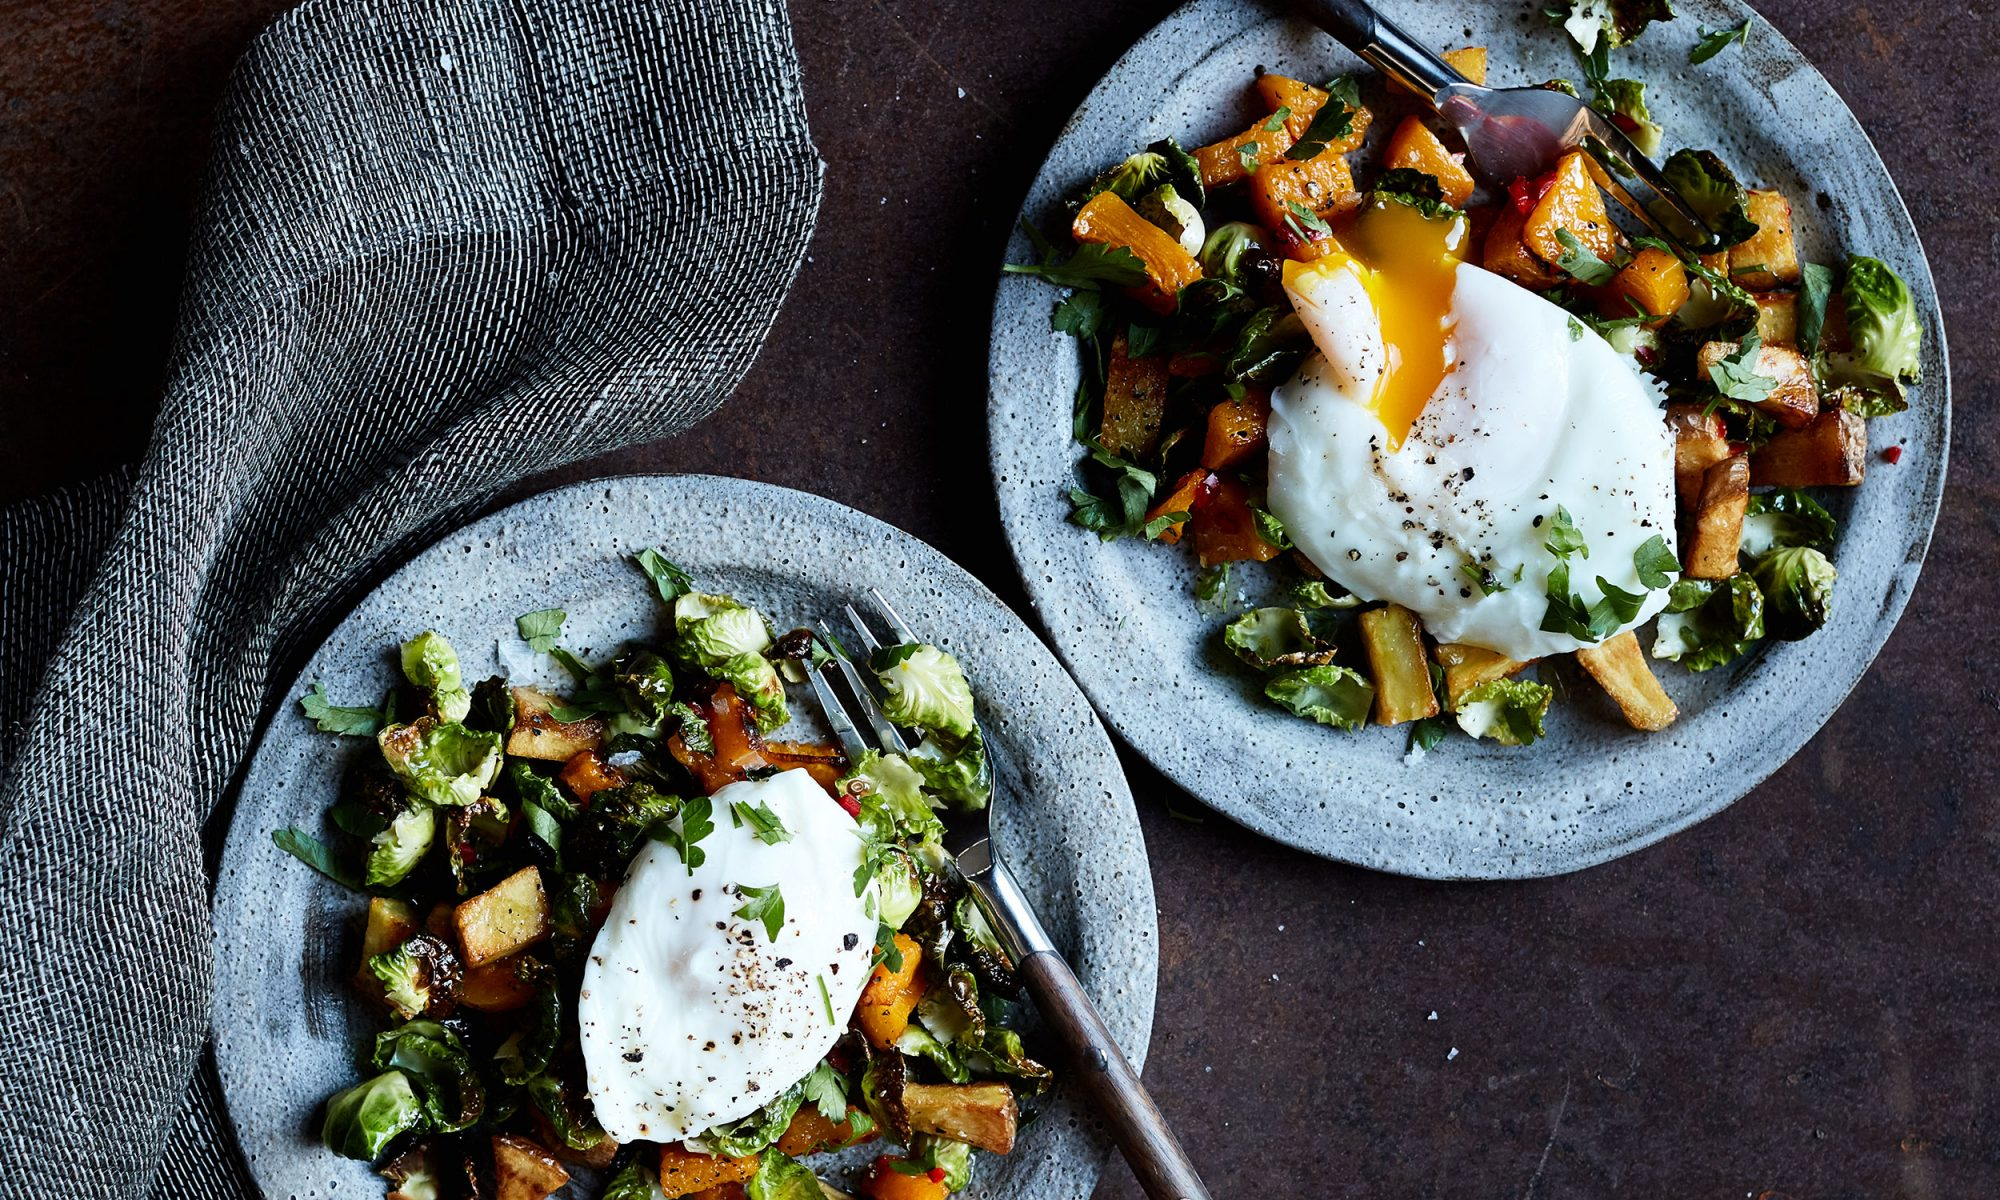 EC: Roast Pumpkin and Brussels Sprouts for Breakfast